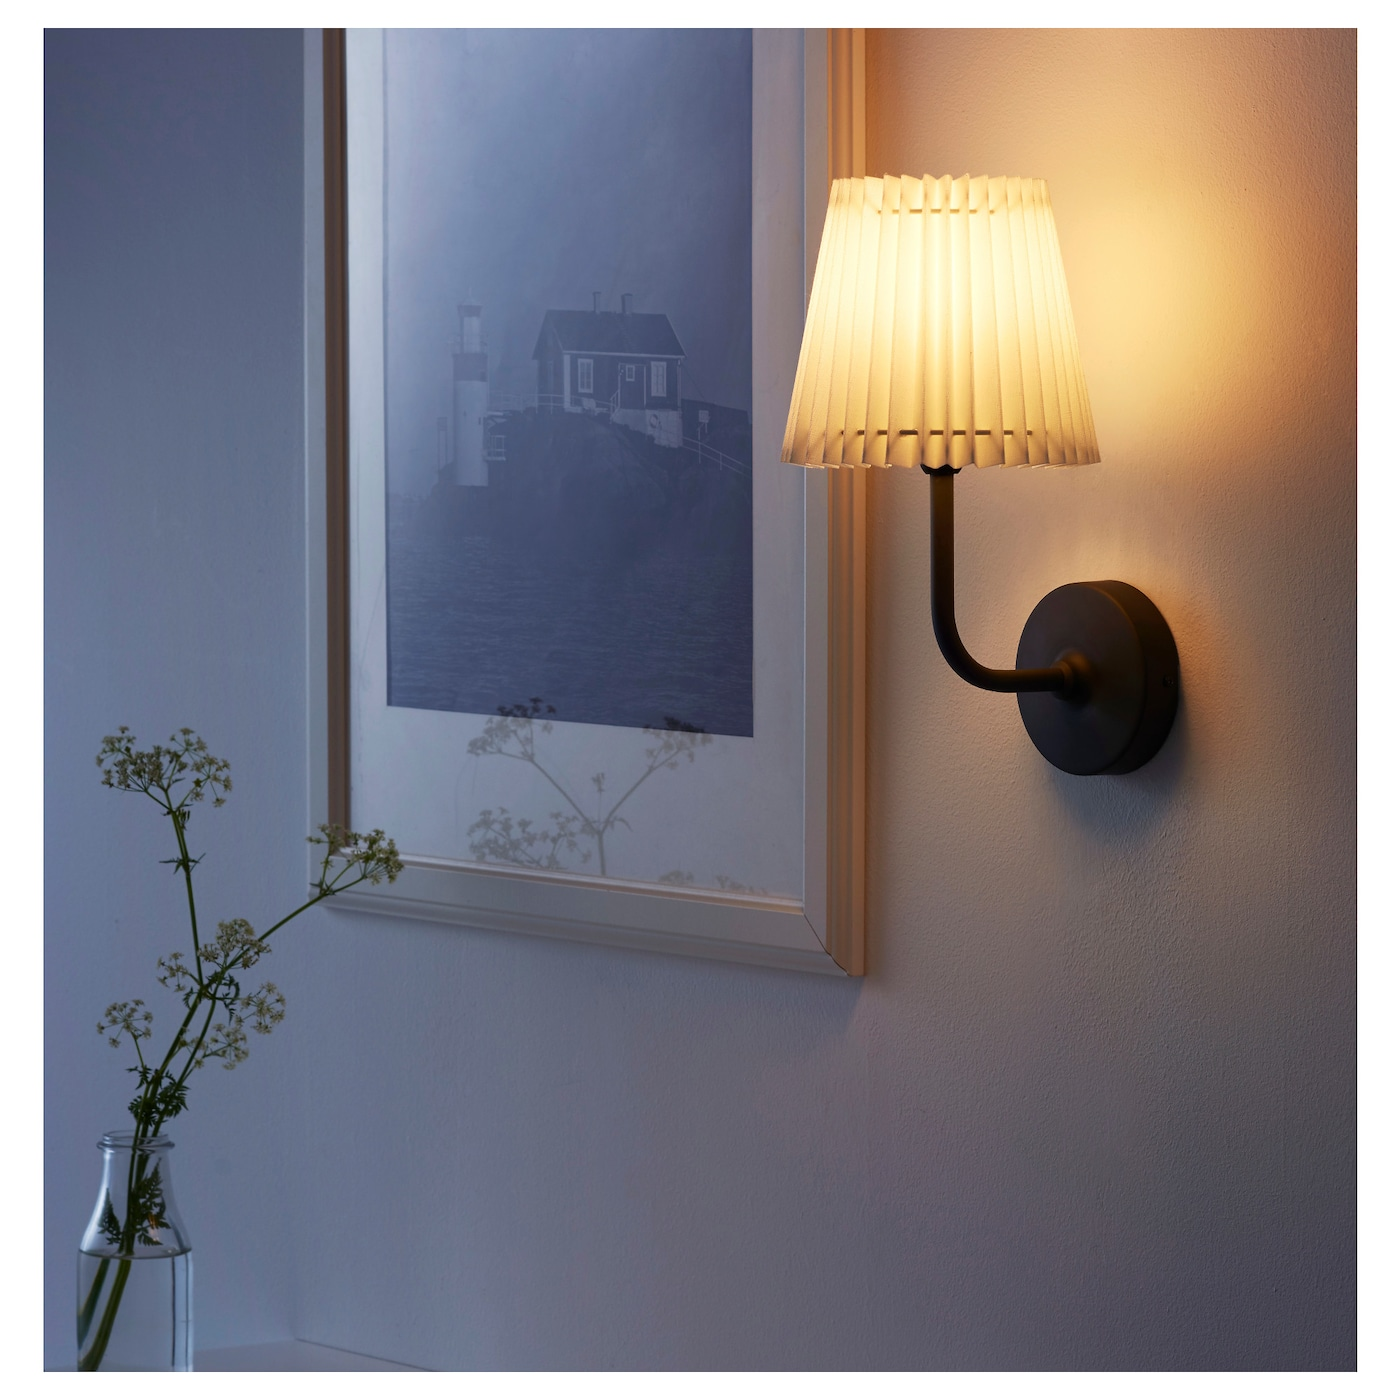 IKEA ÄNGLAND wall lamp, wired-in installation